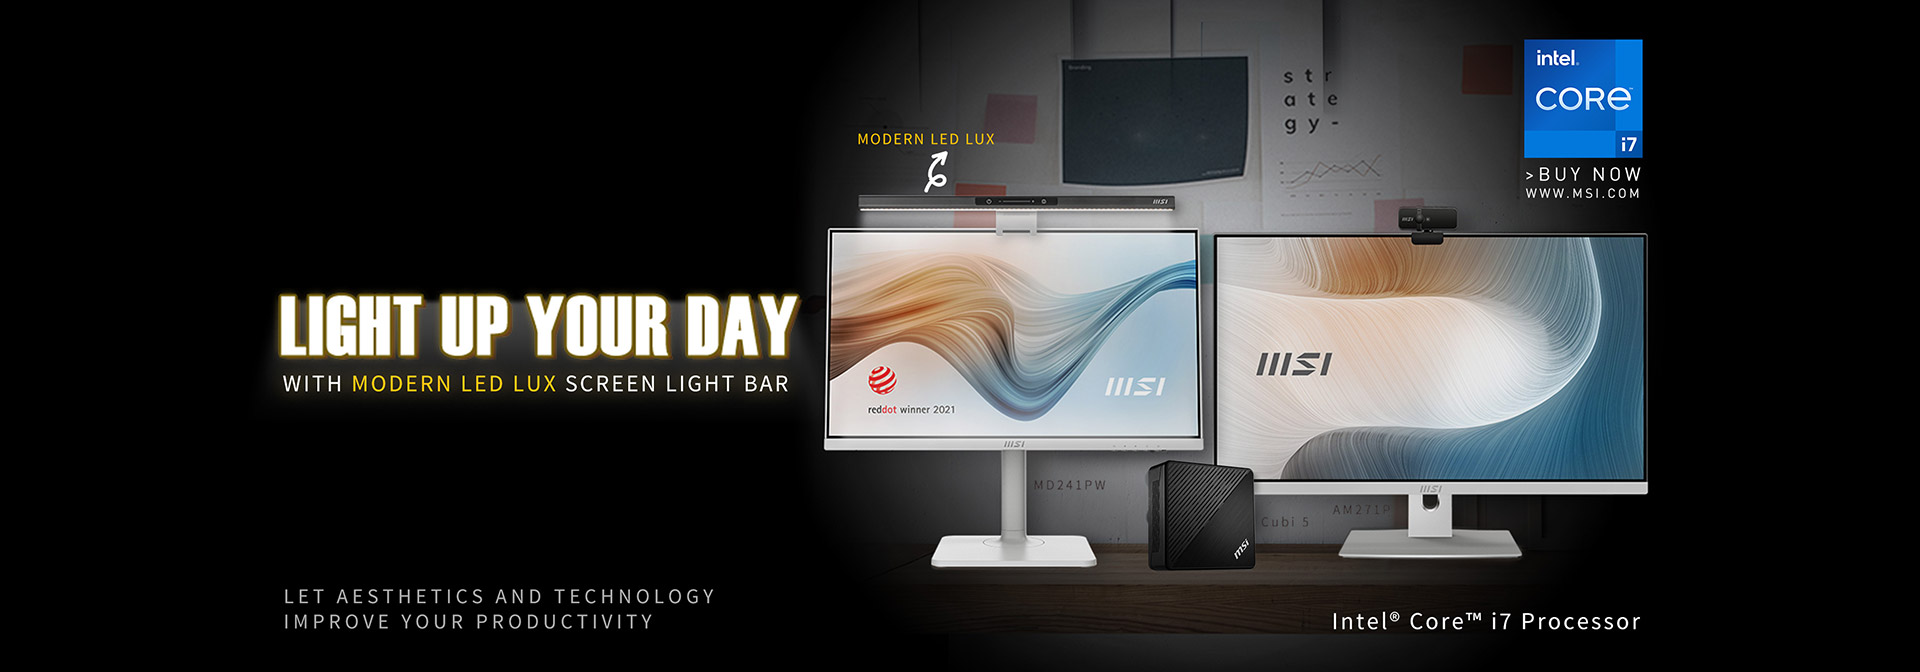 LIGHT UP YOUR DAY